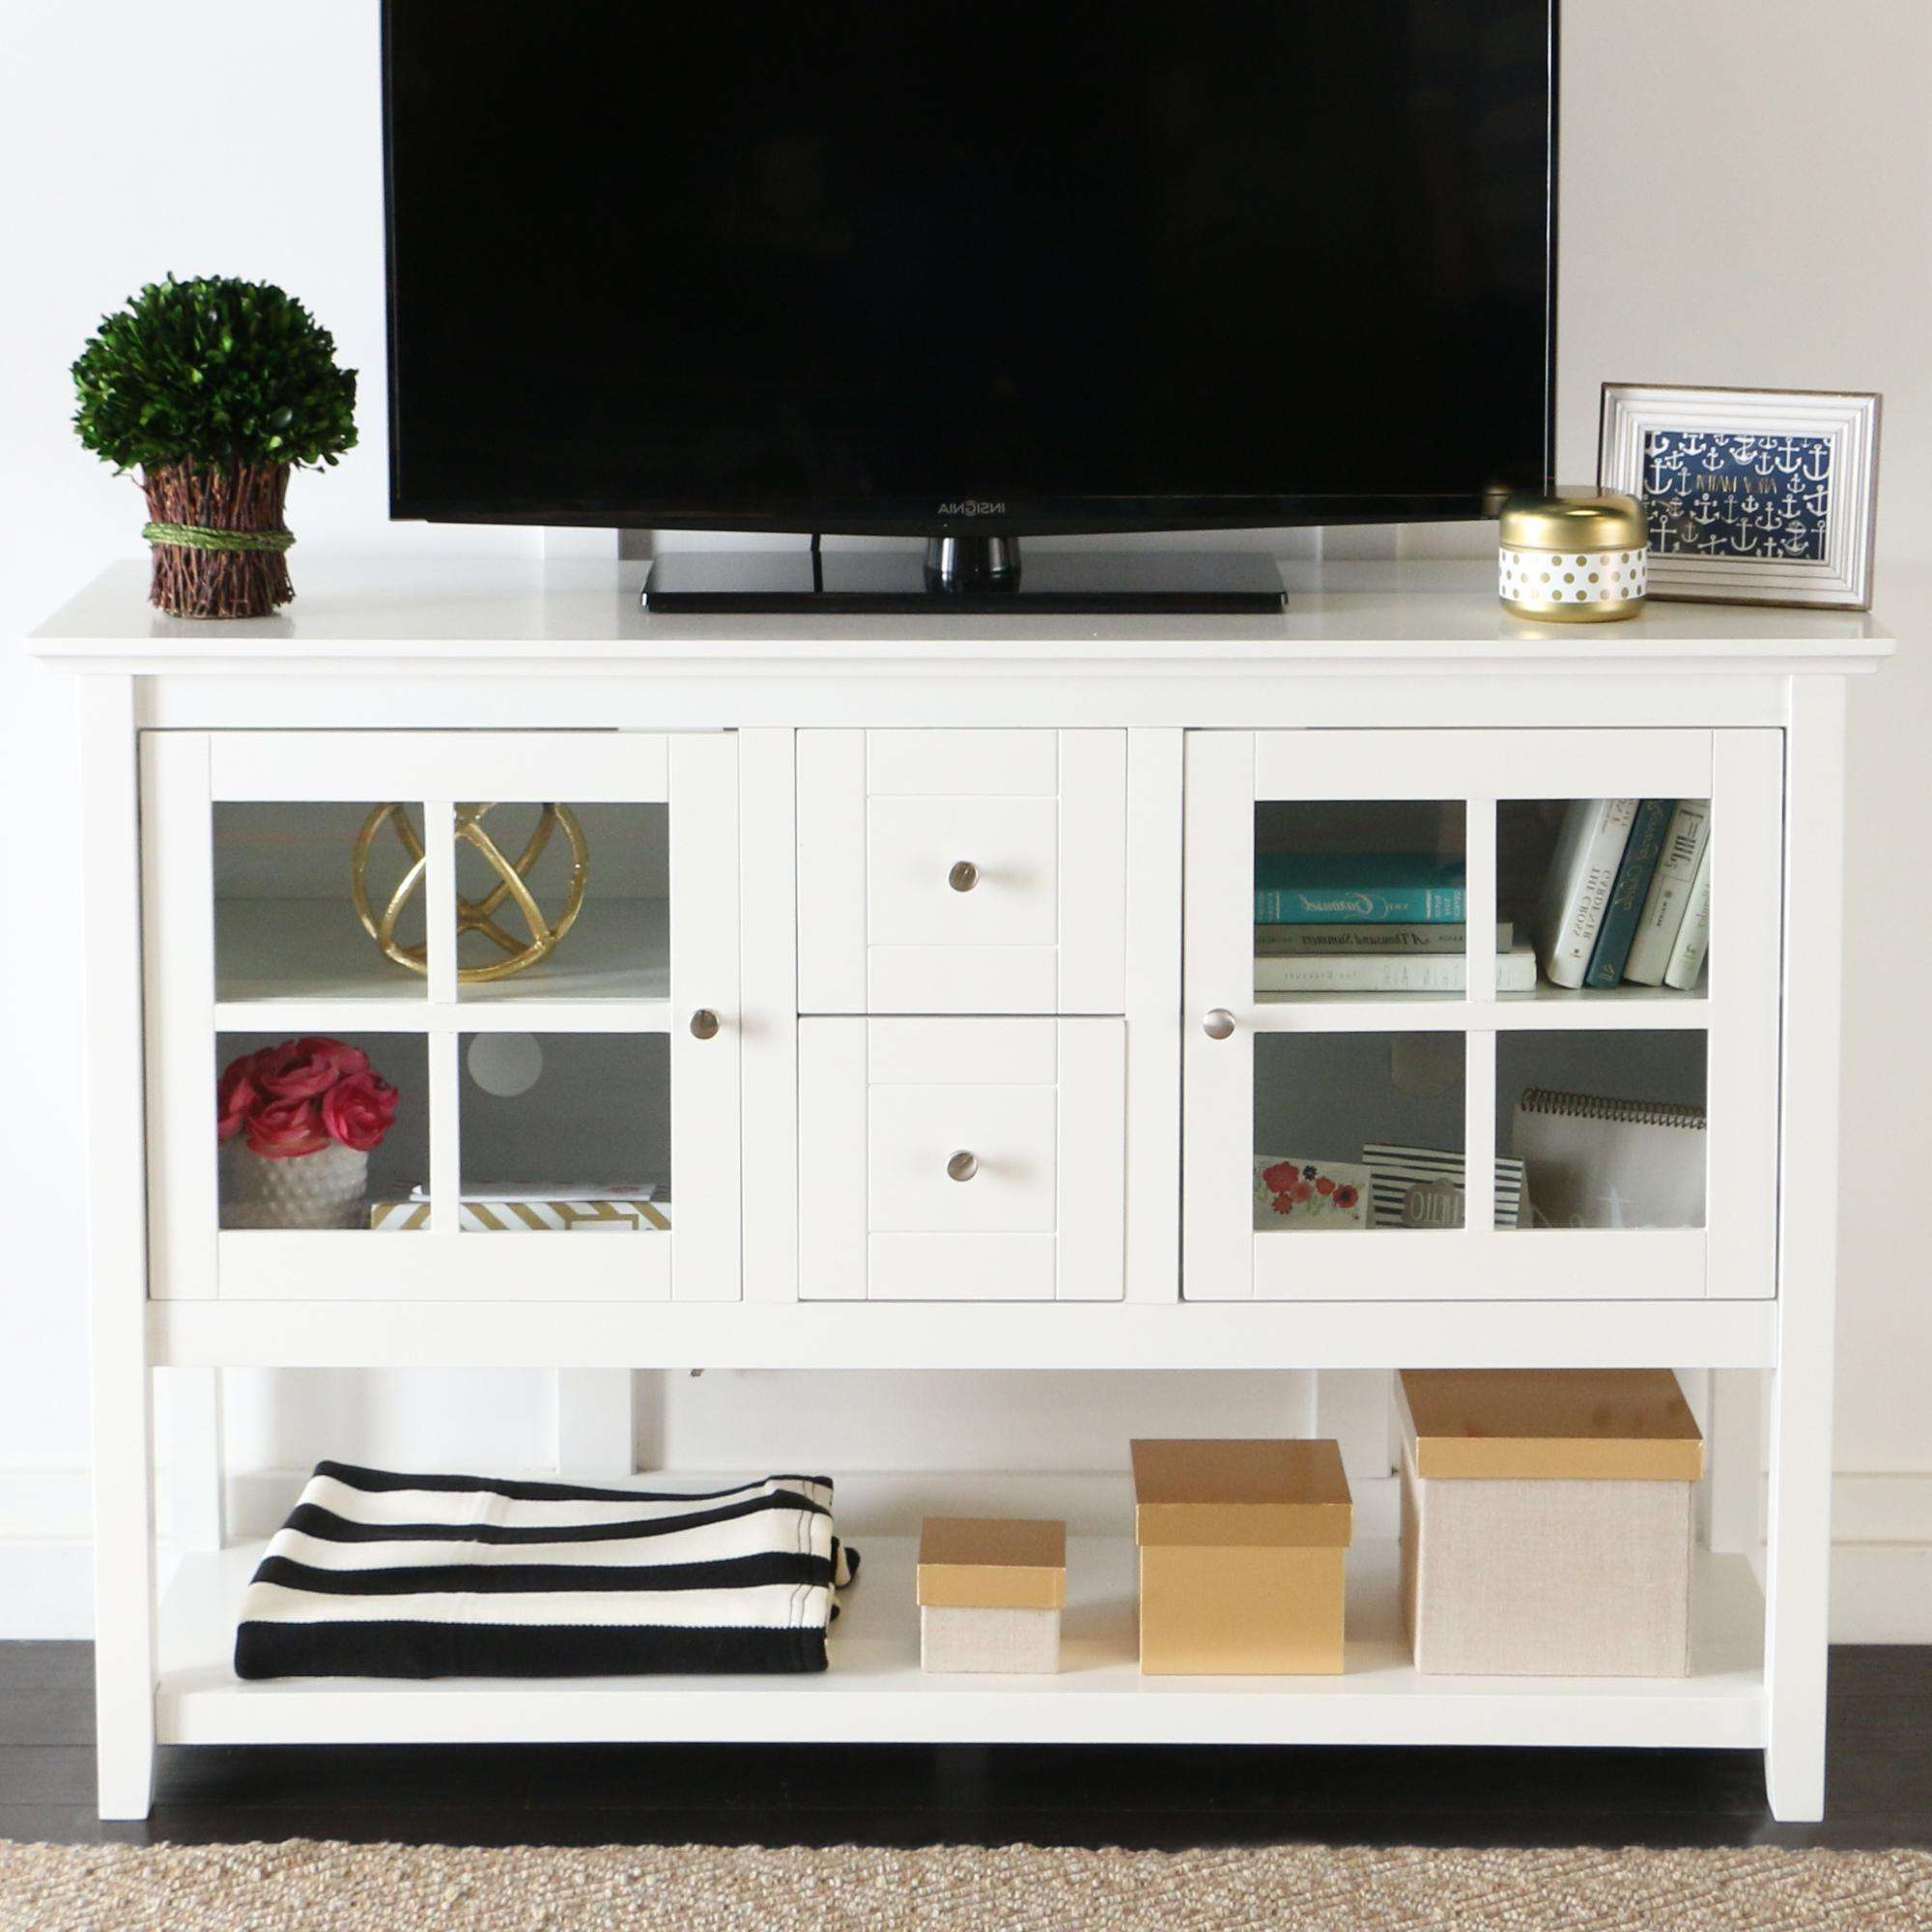 Inch Goldonsole Table24 Deep Table High X 37 Incredible 24 Inch Throughout 24 Inch Deep Tv Stands (View 4 of 15)